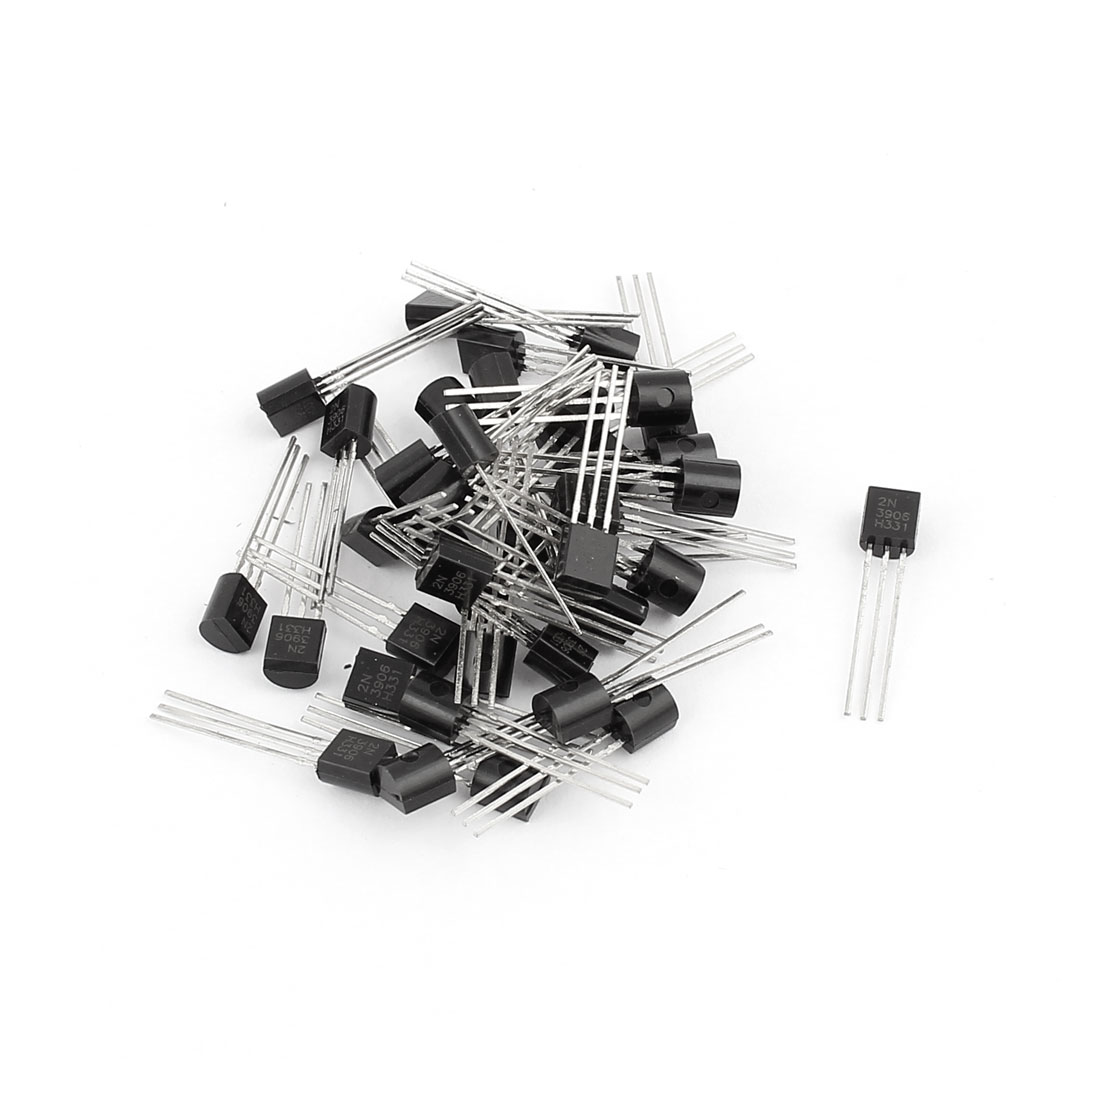 40 Pcs 2N3906 TO-92 PNP Low Power Bipolar Junction Transistors 40V 0.2A